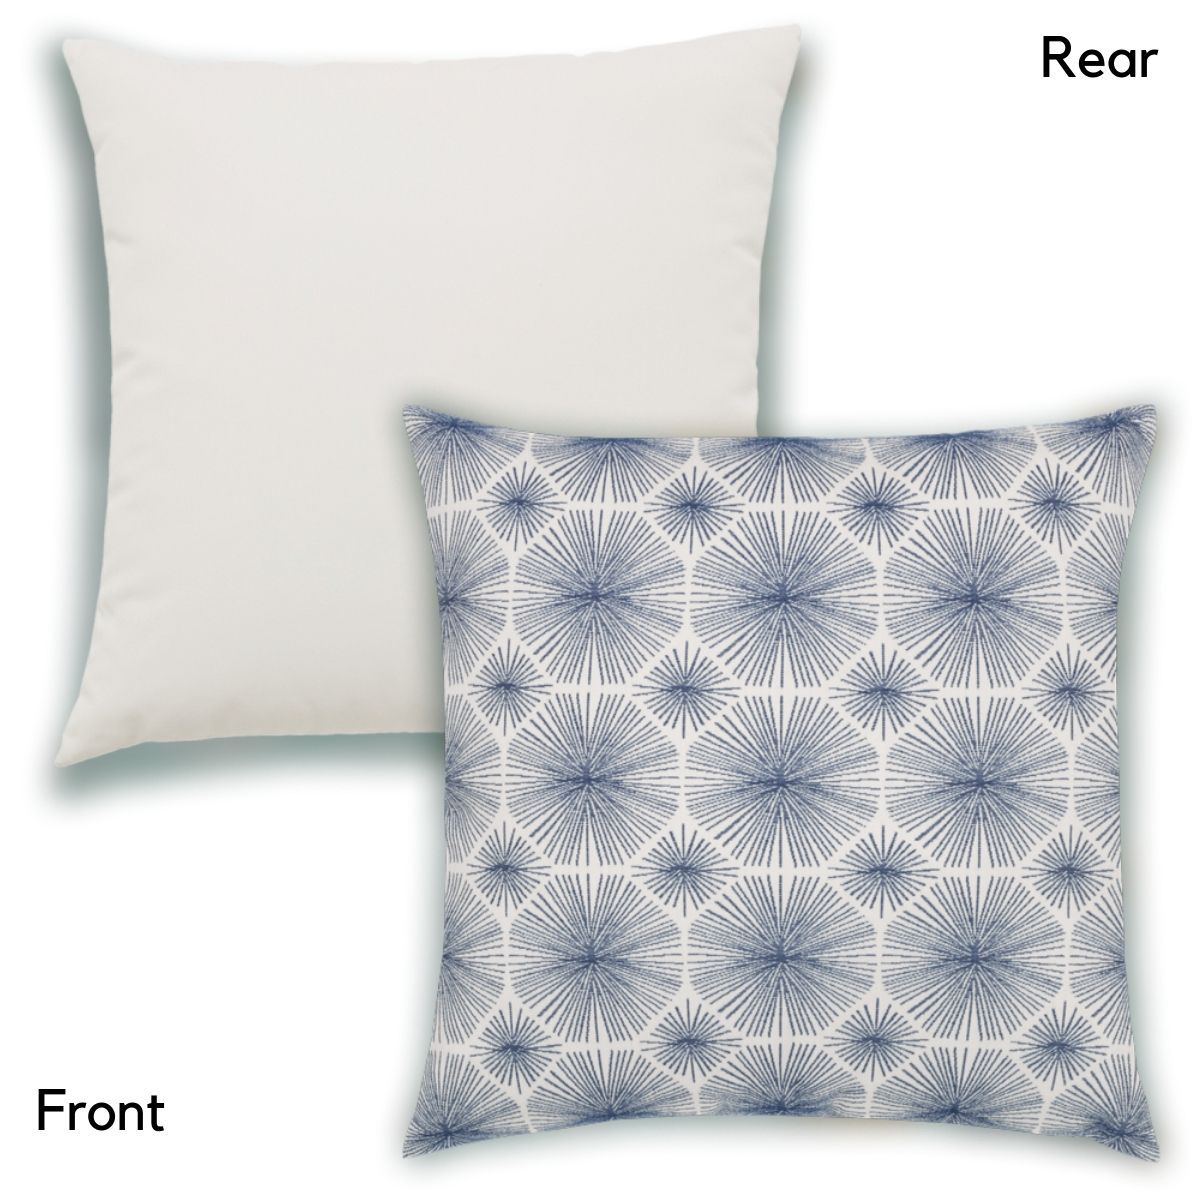 Radiance Indigo Front and Rear of Elaine Smith Pillow